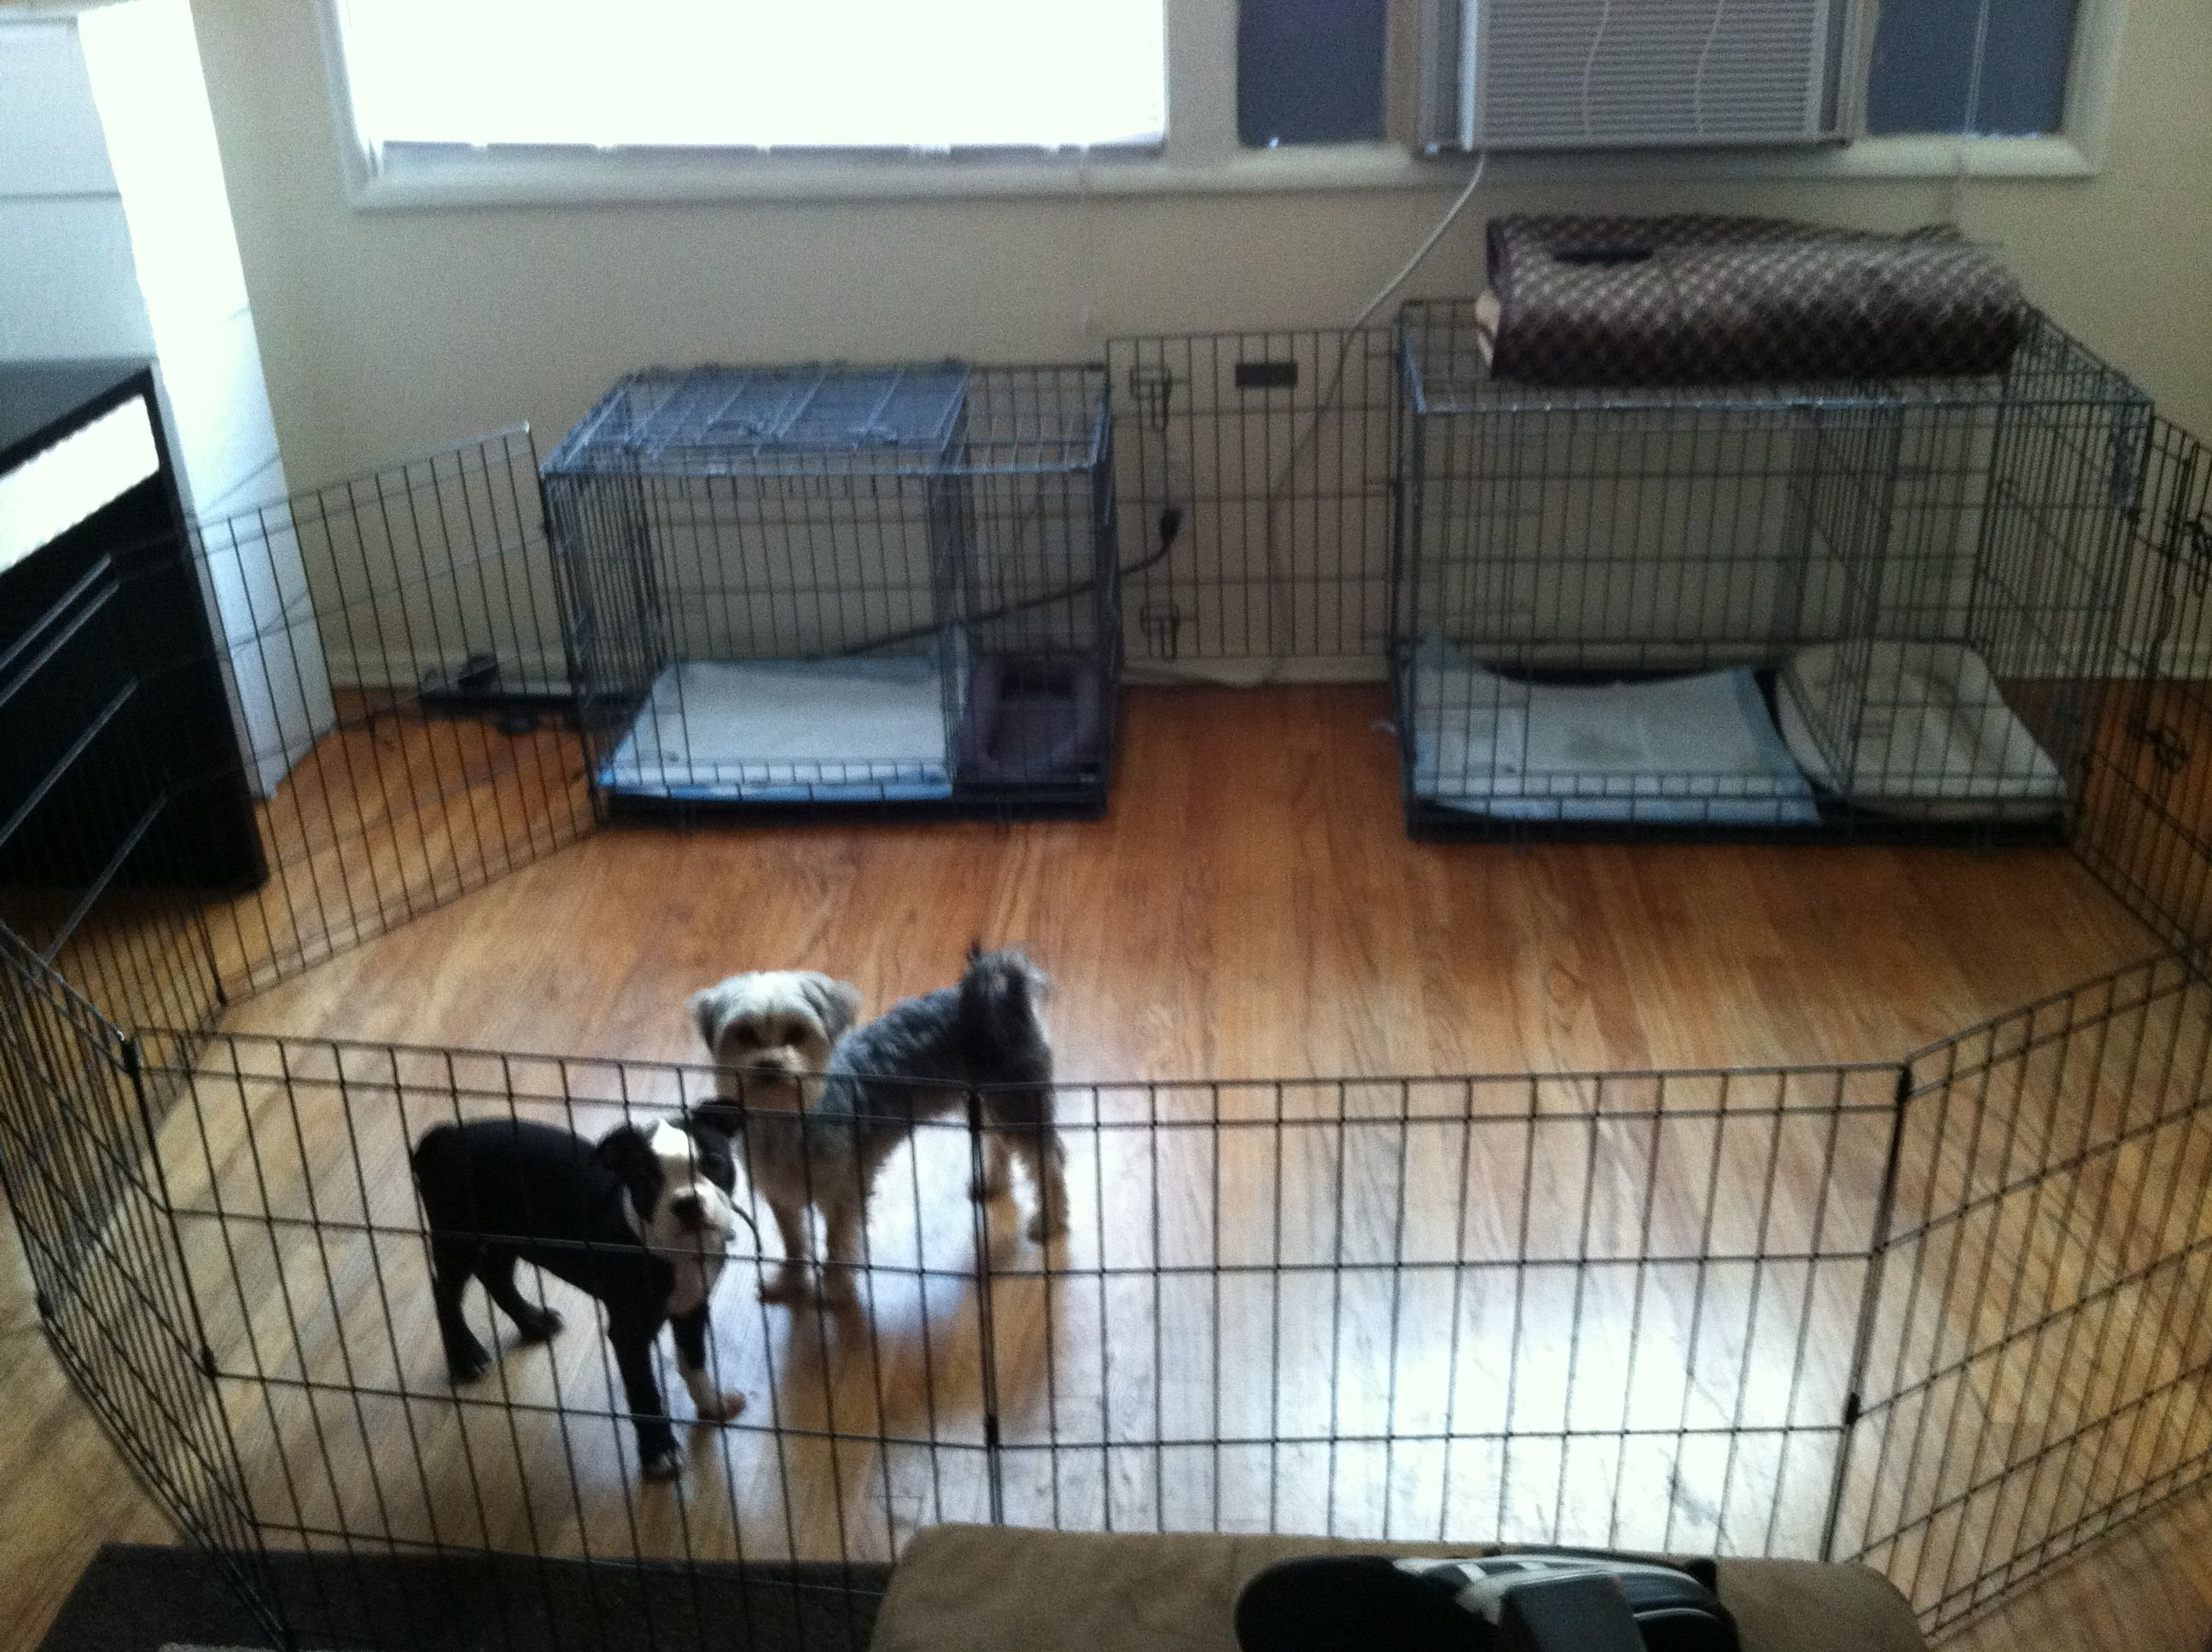 Potty Training A Puppy Share This Pin With Anyone Needing To Potty Train A Puppy Or Dog Chikis And Bo House Training Puppies Dog Playpen Potty Training Puppy